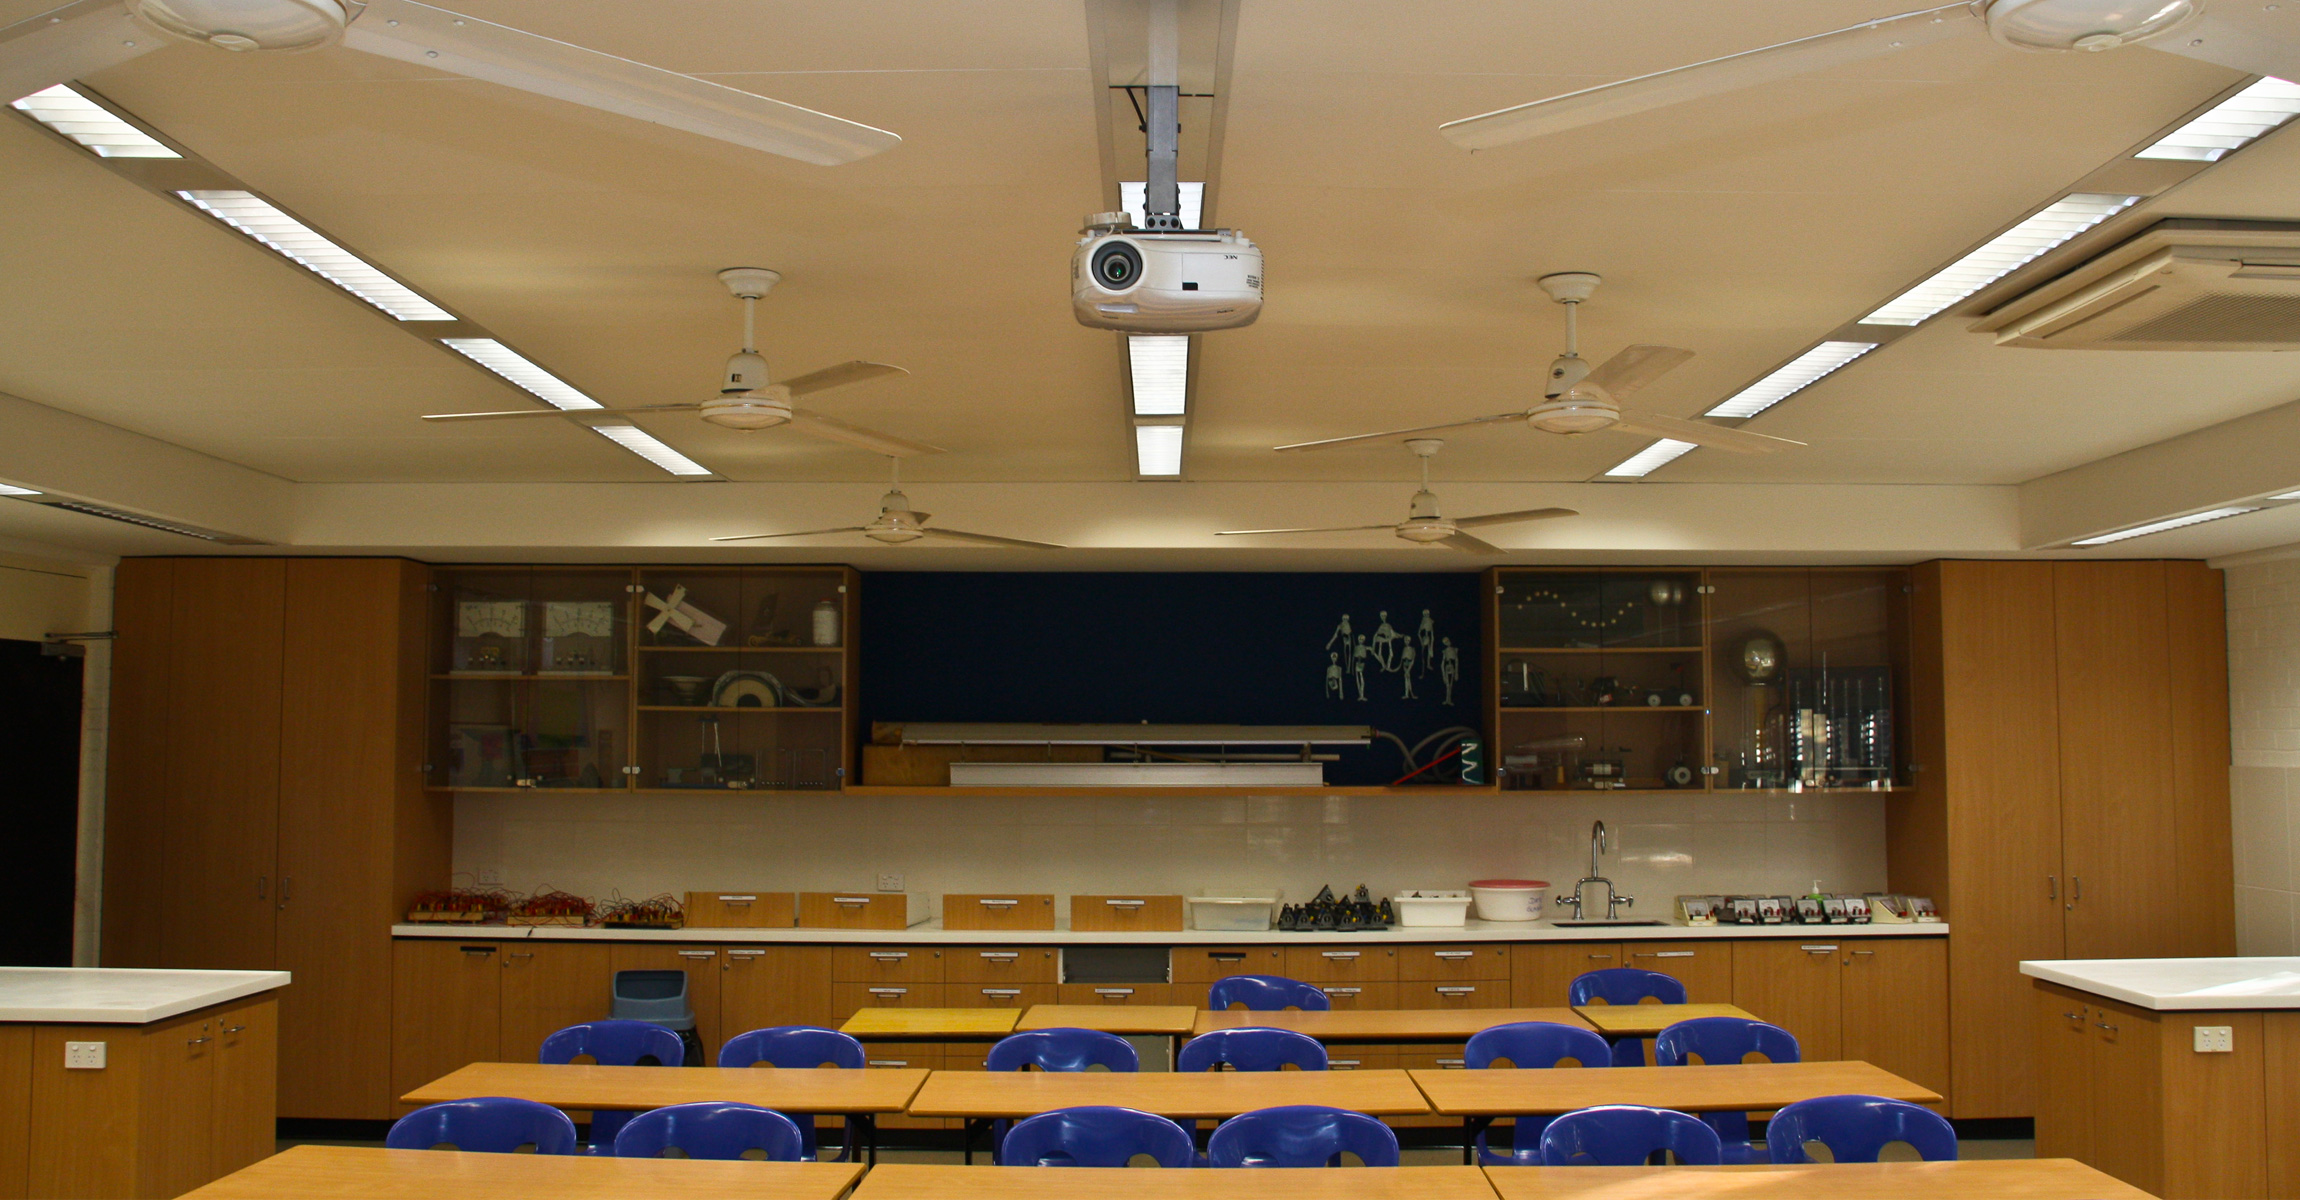 School Science Lab Building Services